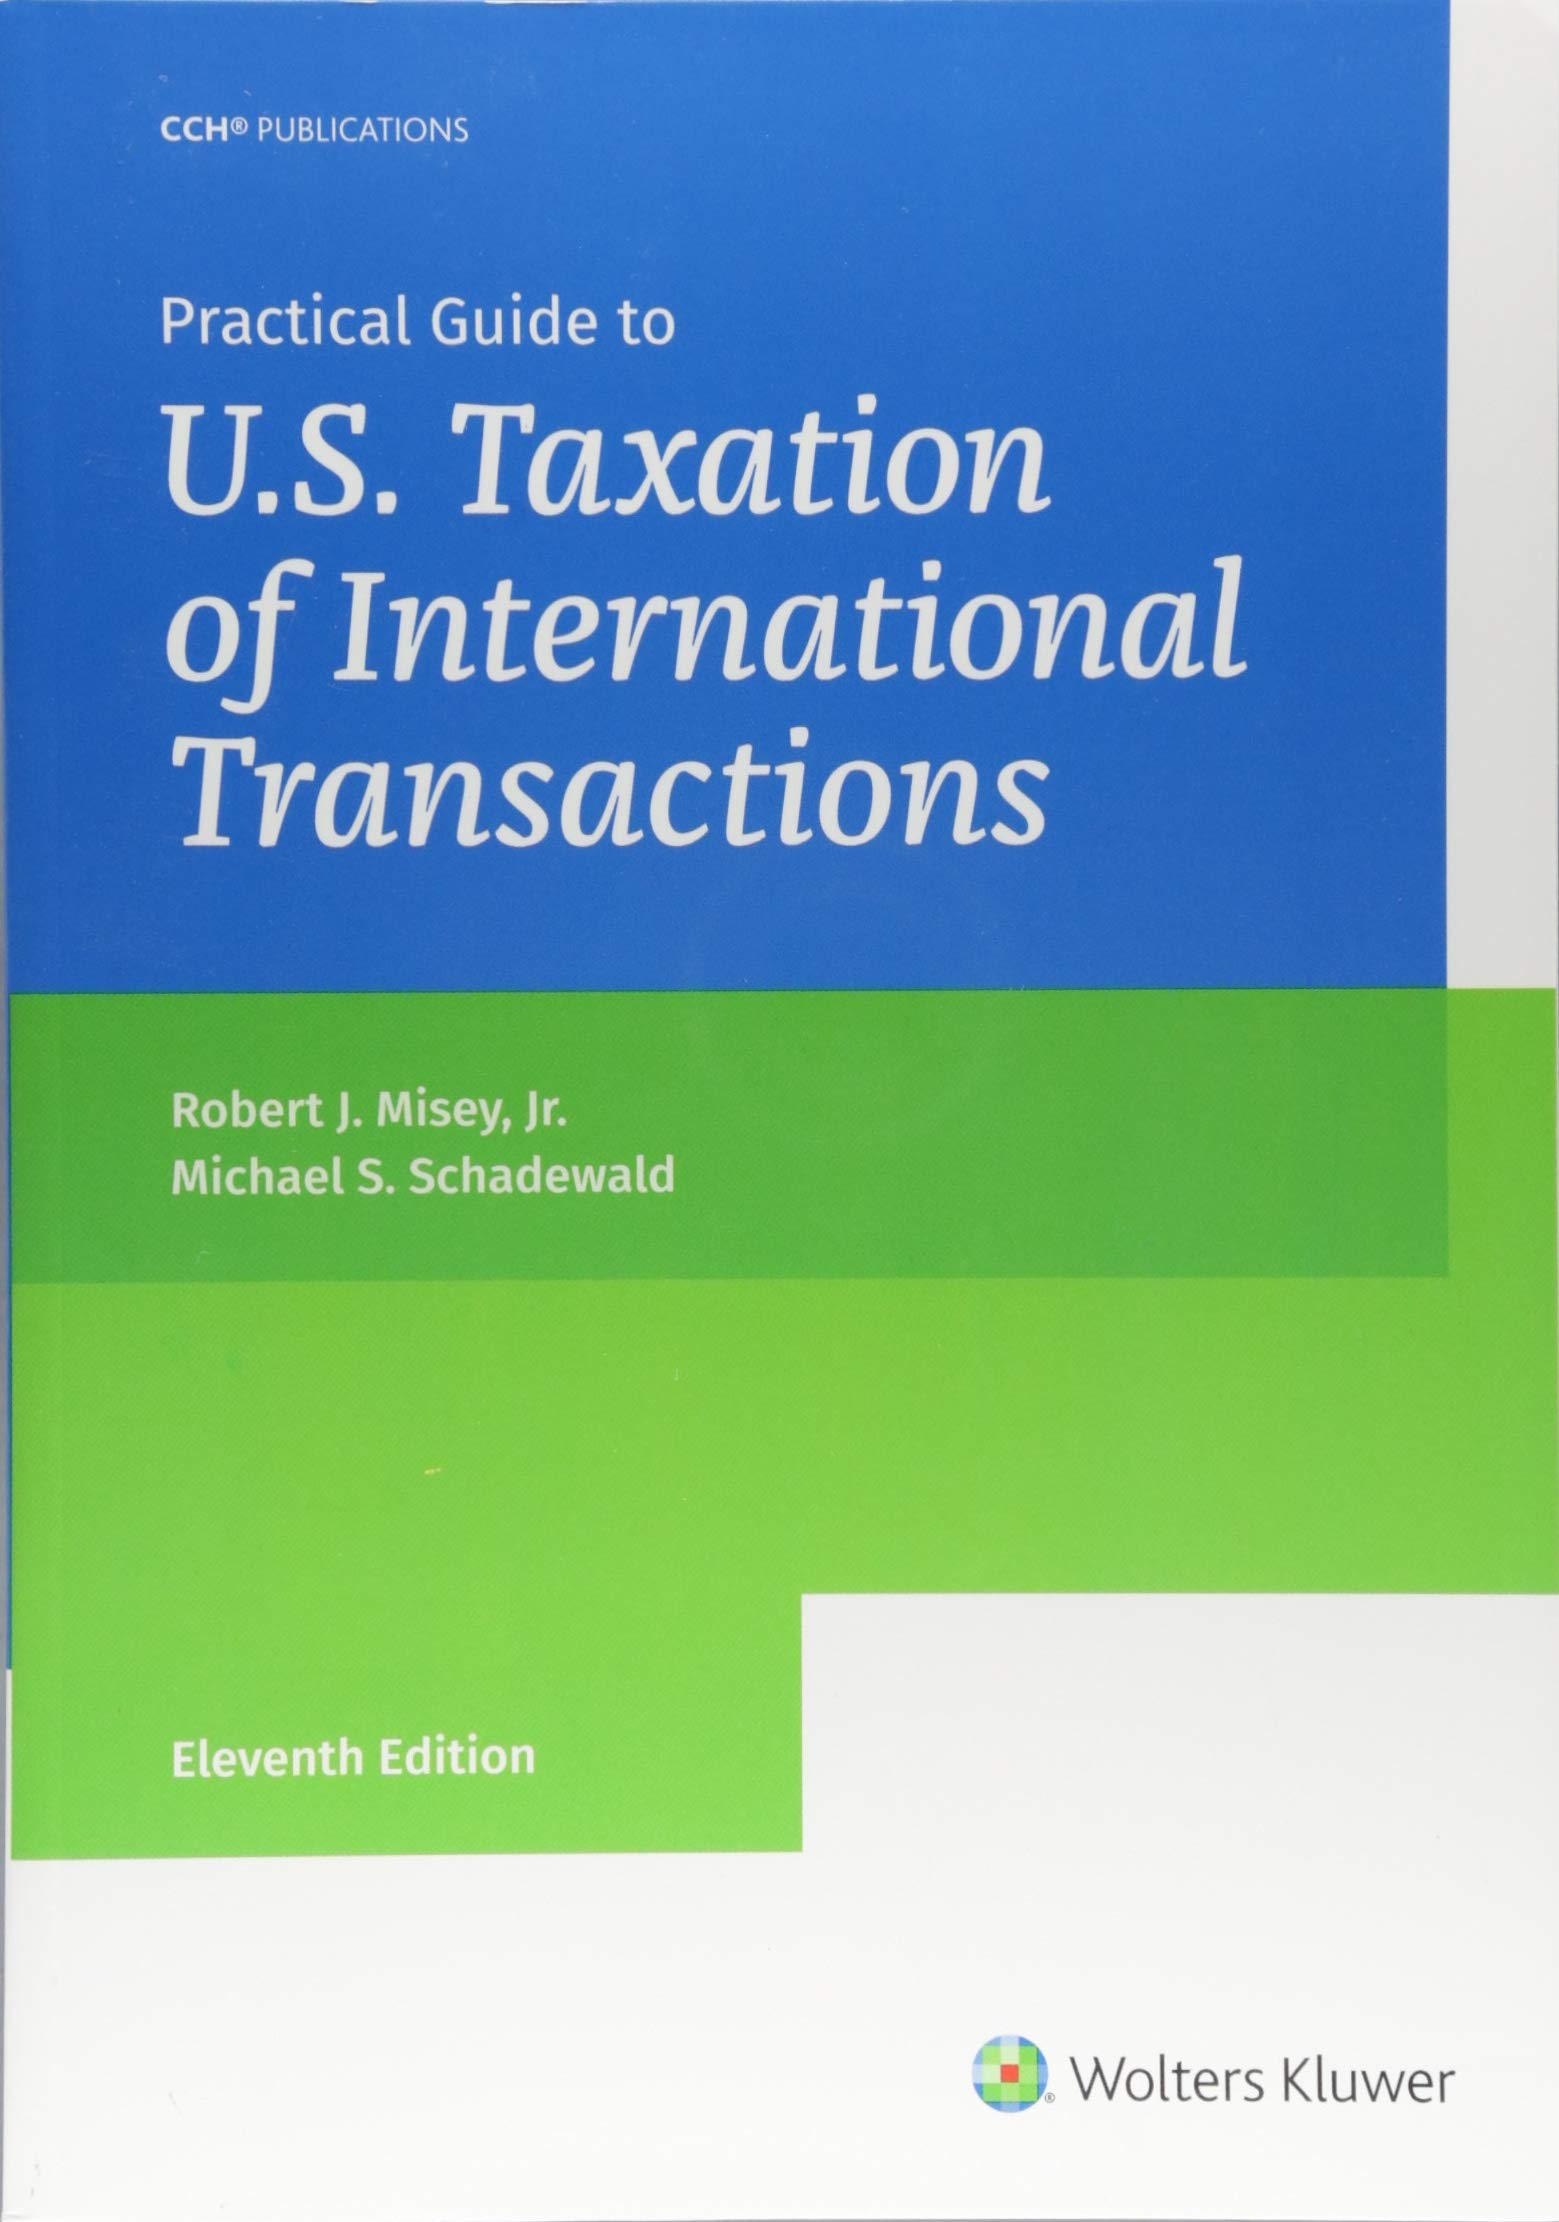 Practical Guide to U.S. Taxation of International Transactions (11th Edition) by CCH Inc.